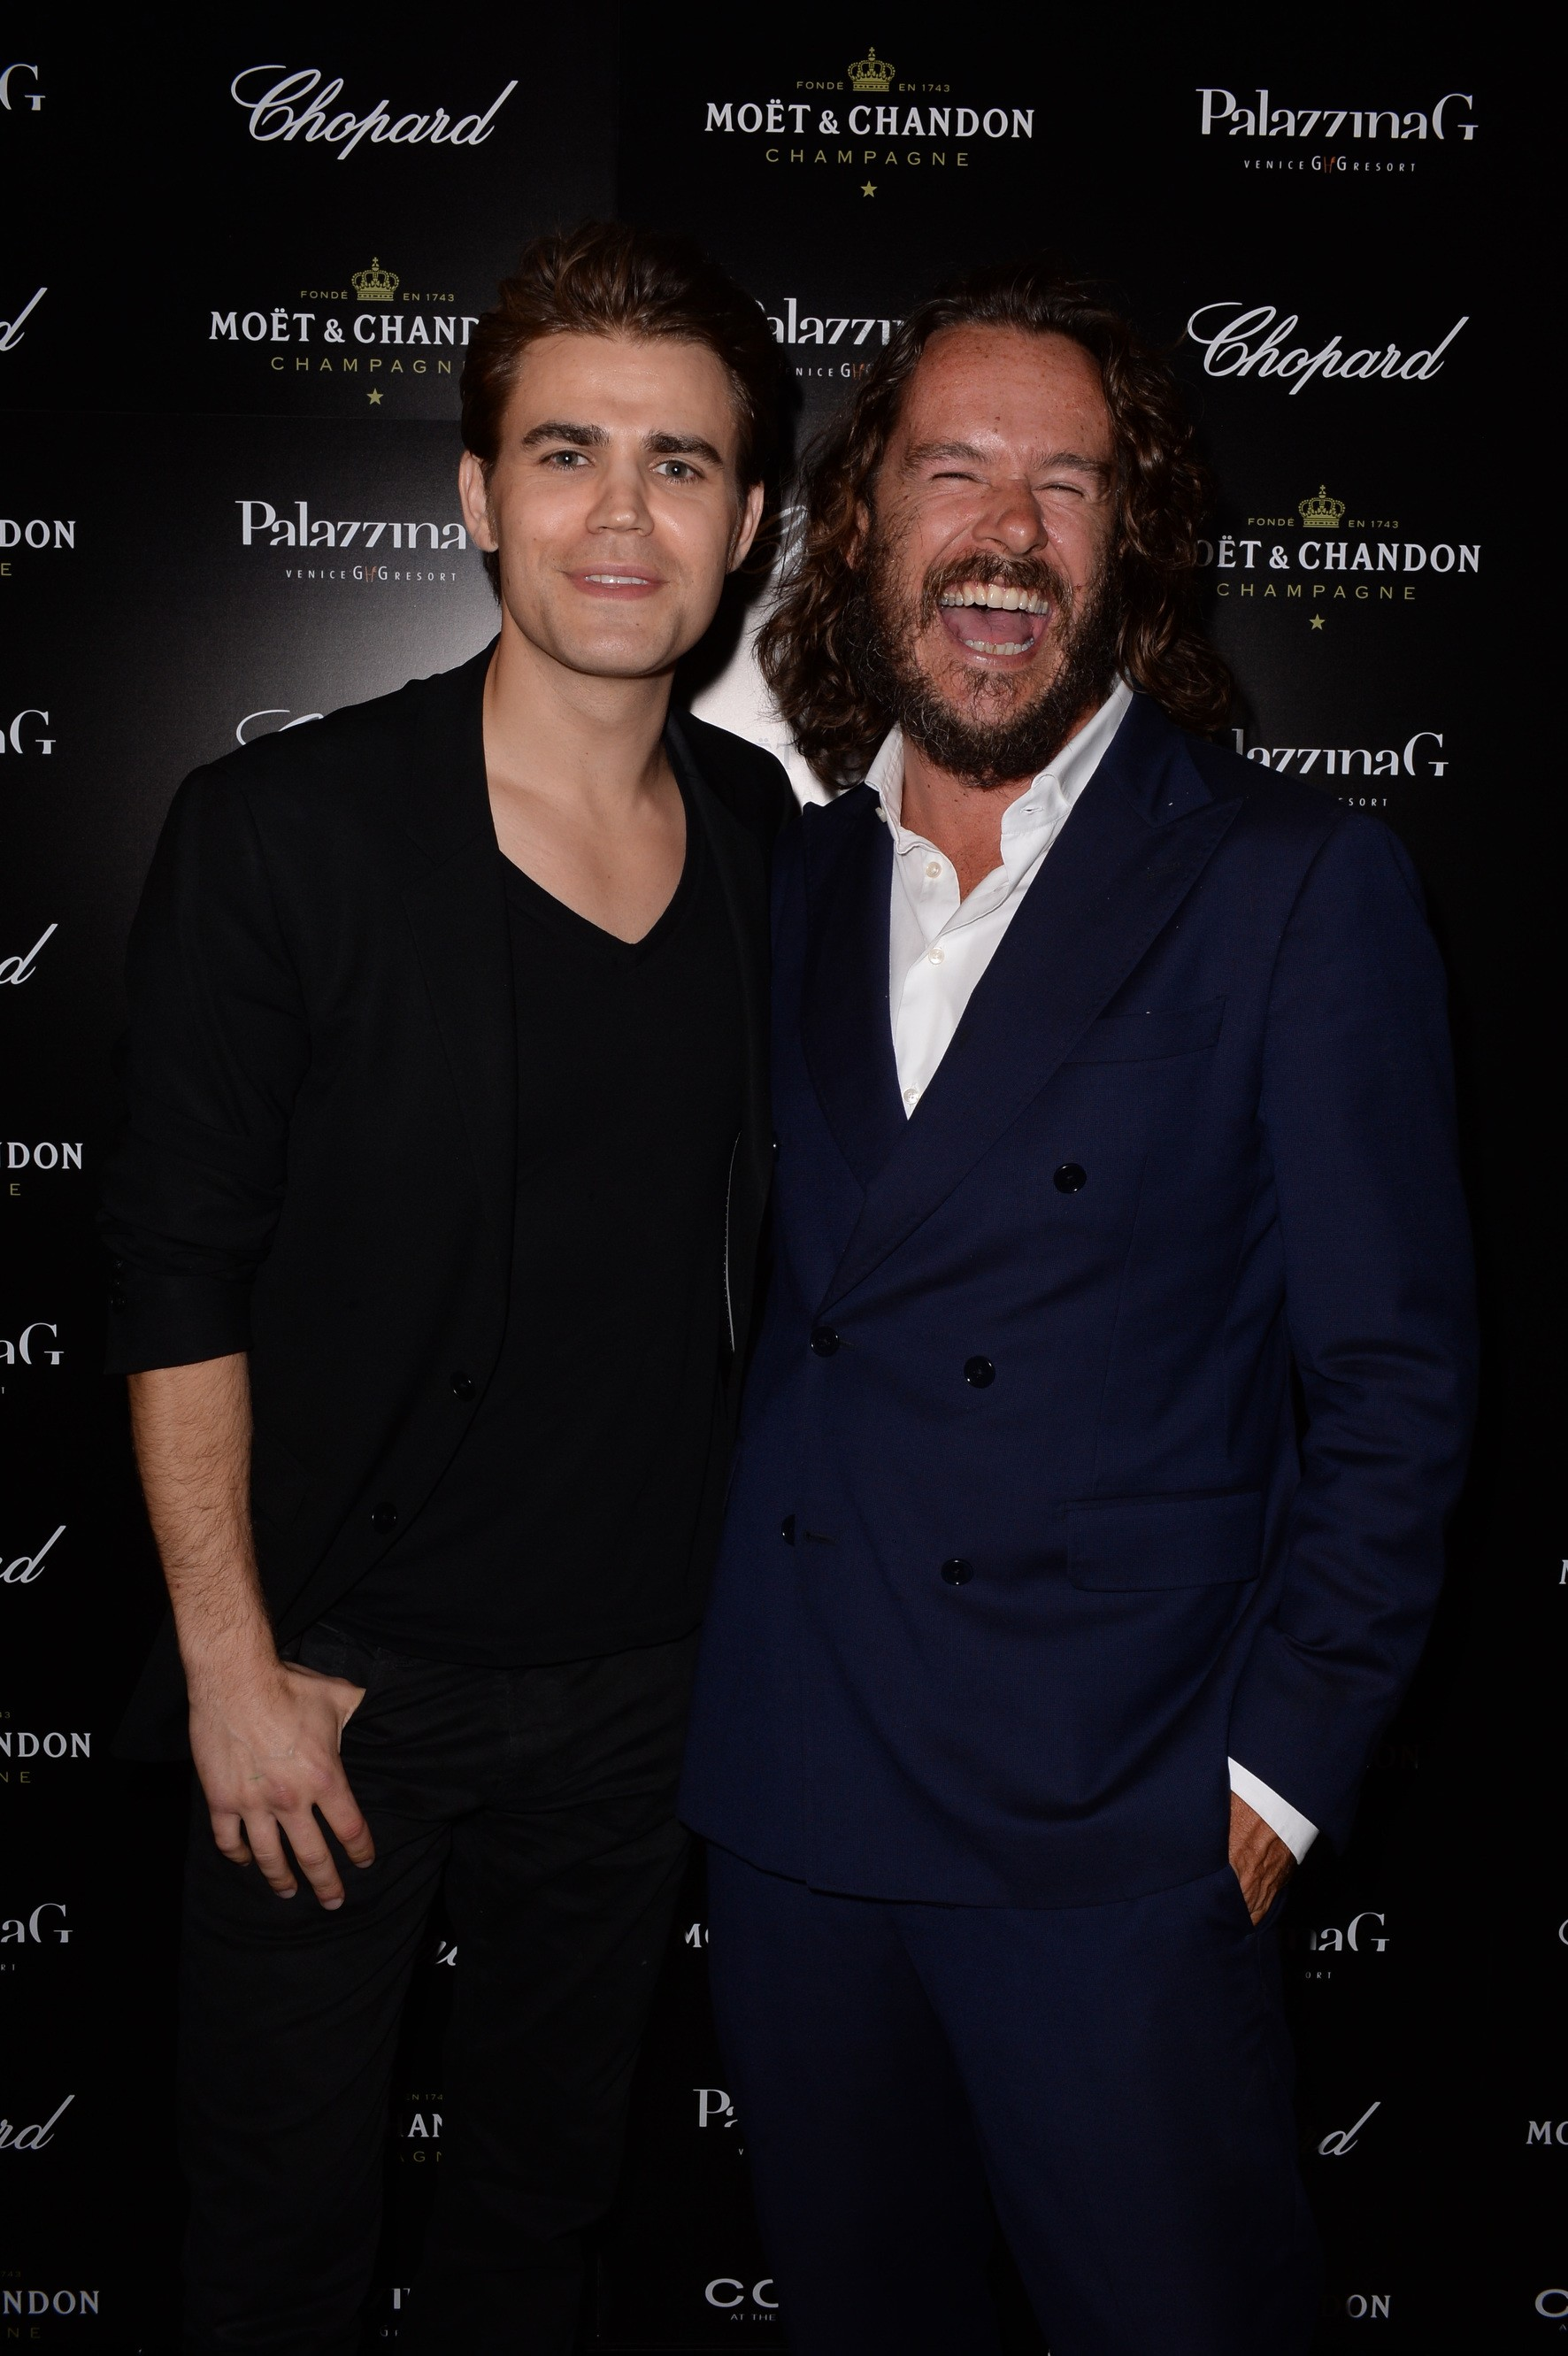 Paul Wesley and PalazzinaG Hotel owner Emanuele Garosci at a Venice Film Festival event Aug. 27, sponsored by Chopard, Moët Chandon and Cotril. ( Stefano Guindani/sgpitalia.com)